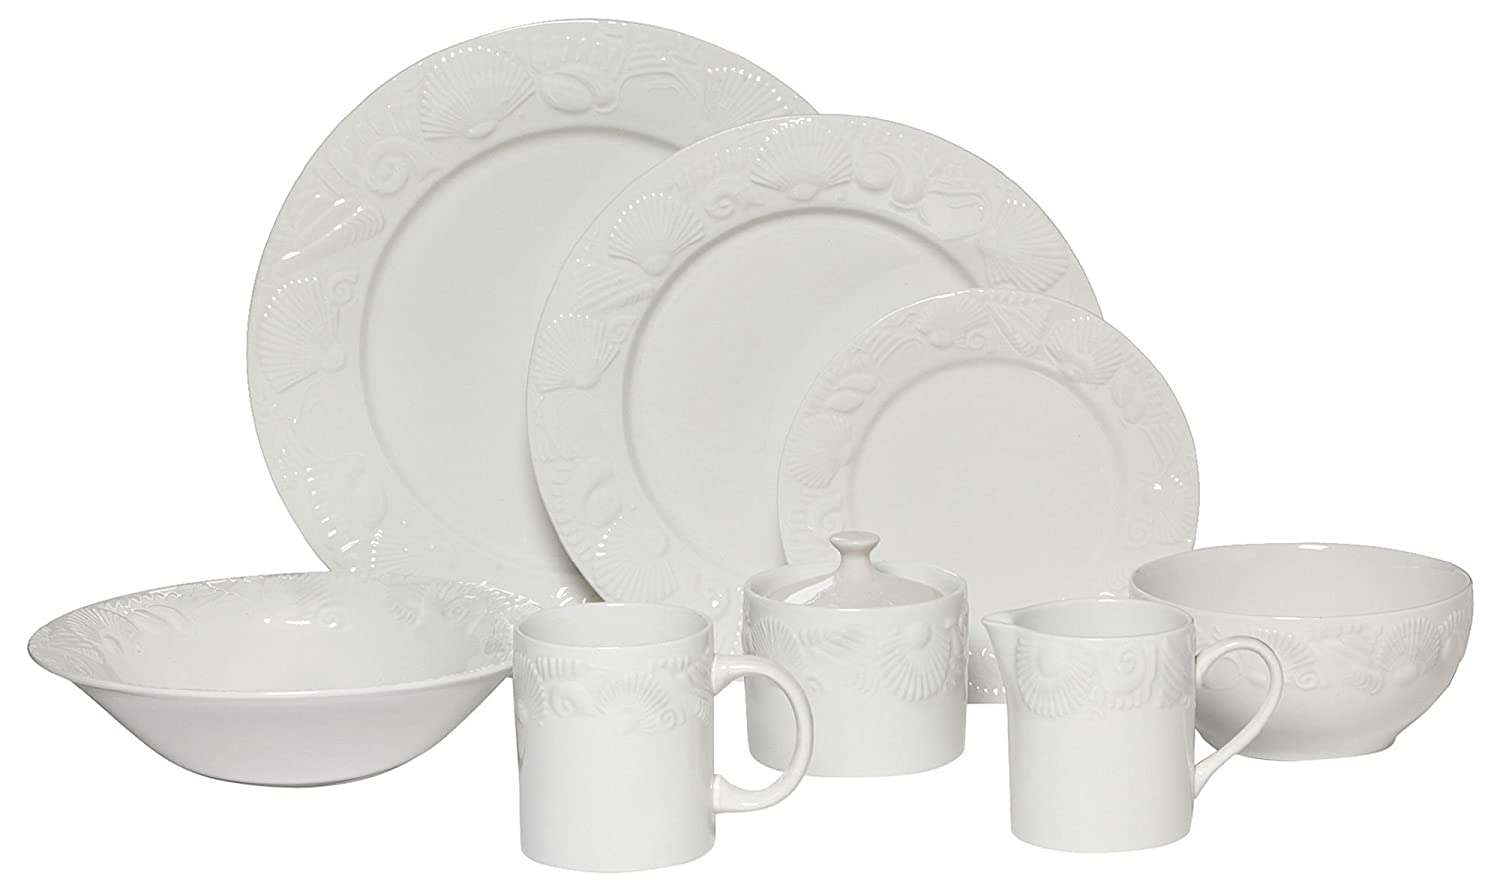 Amazon.com | Pfaltzgraff Lido Beach 37-pc. Dinnerware Set One Size Dinnerware Sets  sc 1 st  Amazon.com & Amazon.com | Pfaltzgraff Lido Beach 37-pc. Dinnerware Set One Size ...